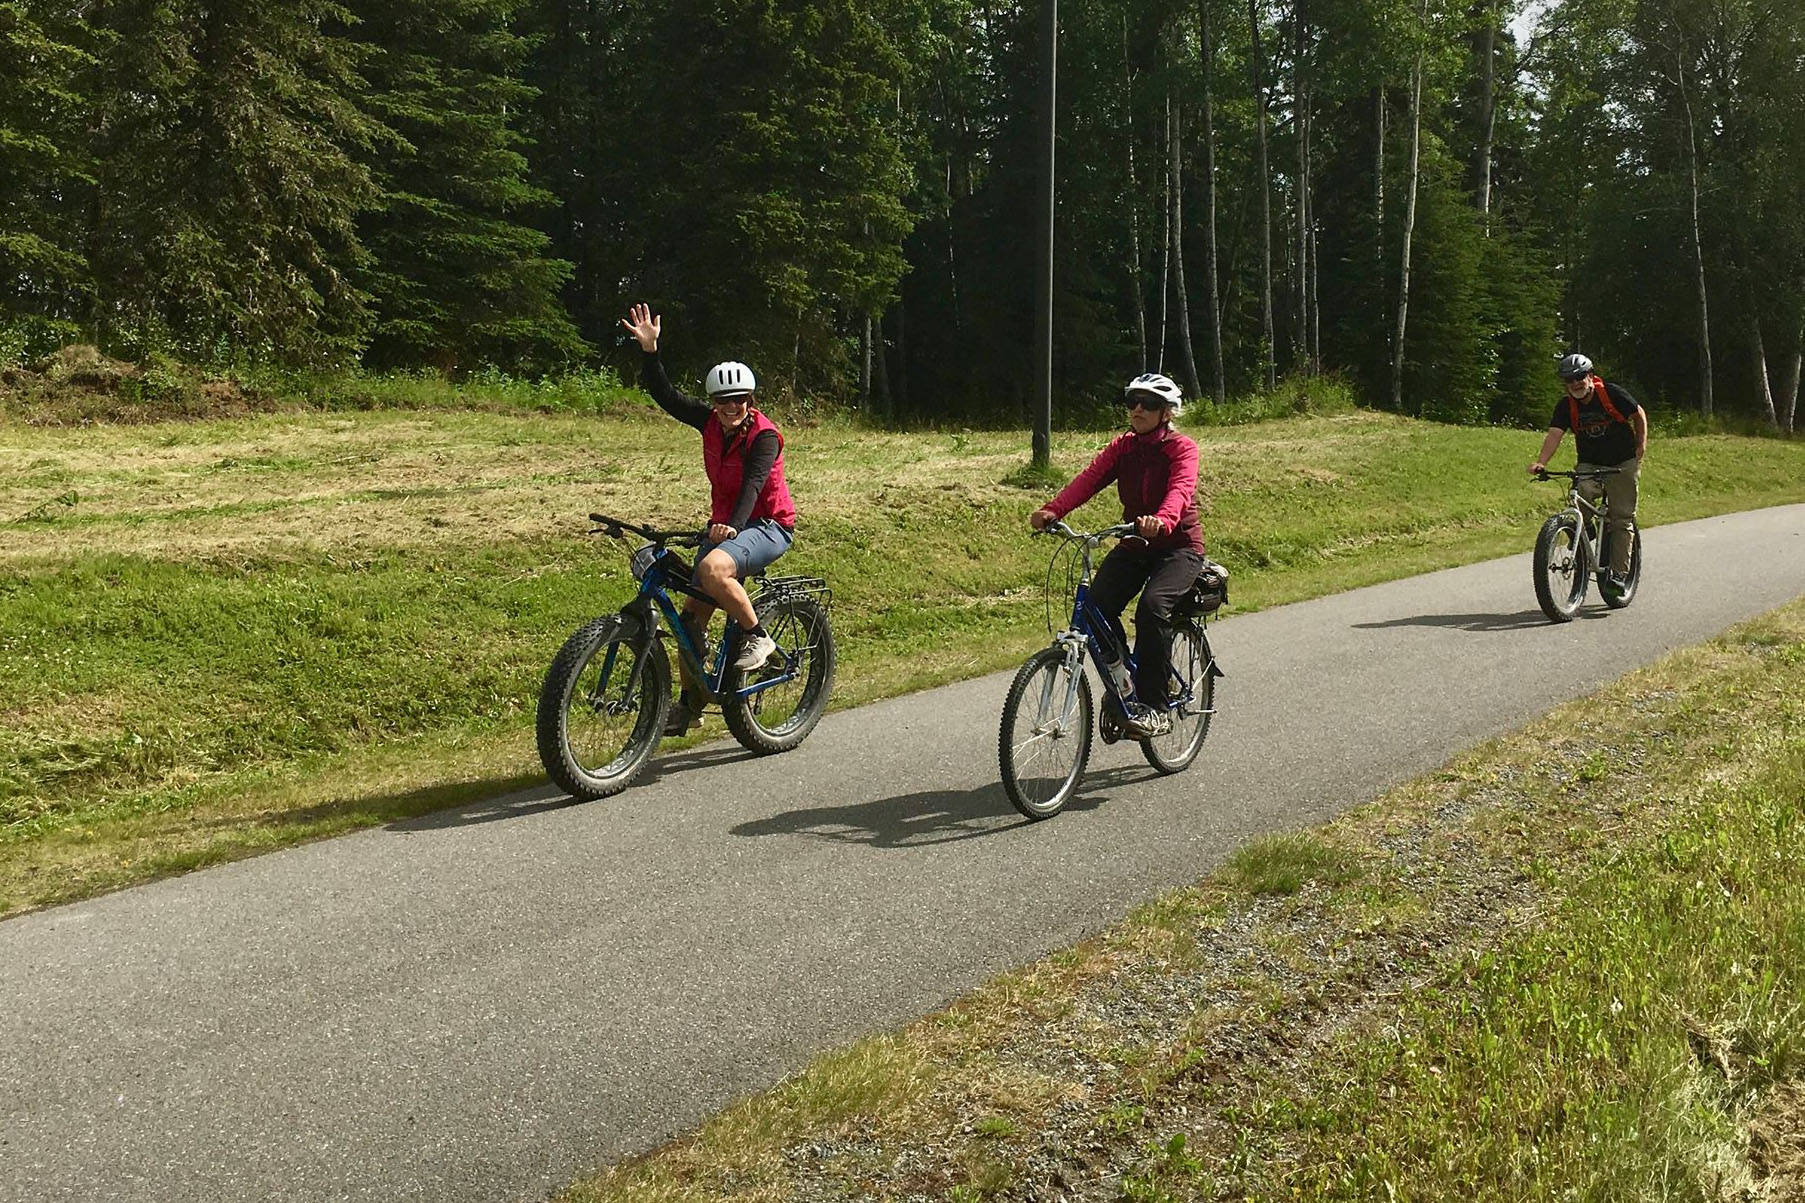 Bicyclists participate in a Full Moon Bike Ride in Soldotna, Alaska on July 27, 2018. (Photo courtesy of Jenn Tabor/BiKS)